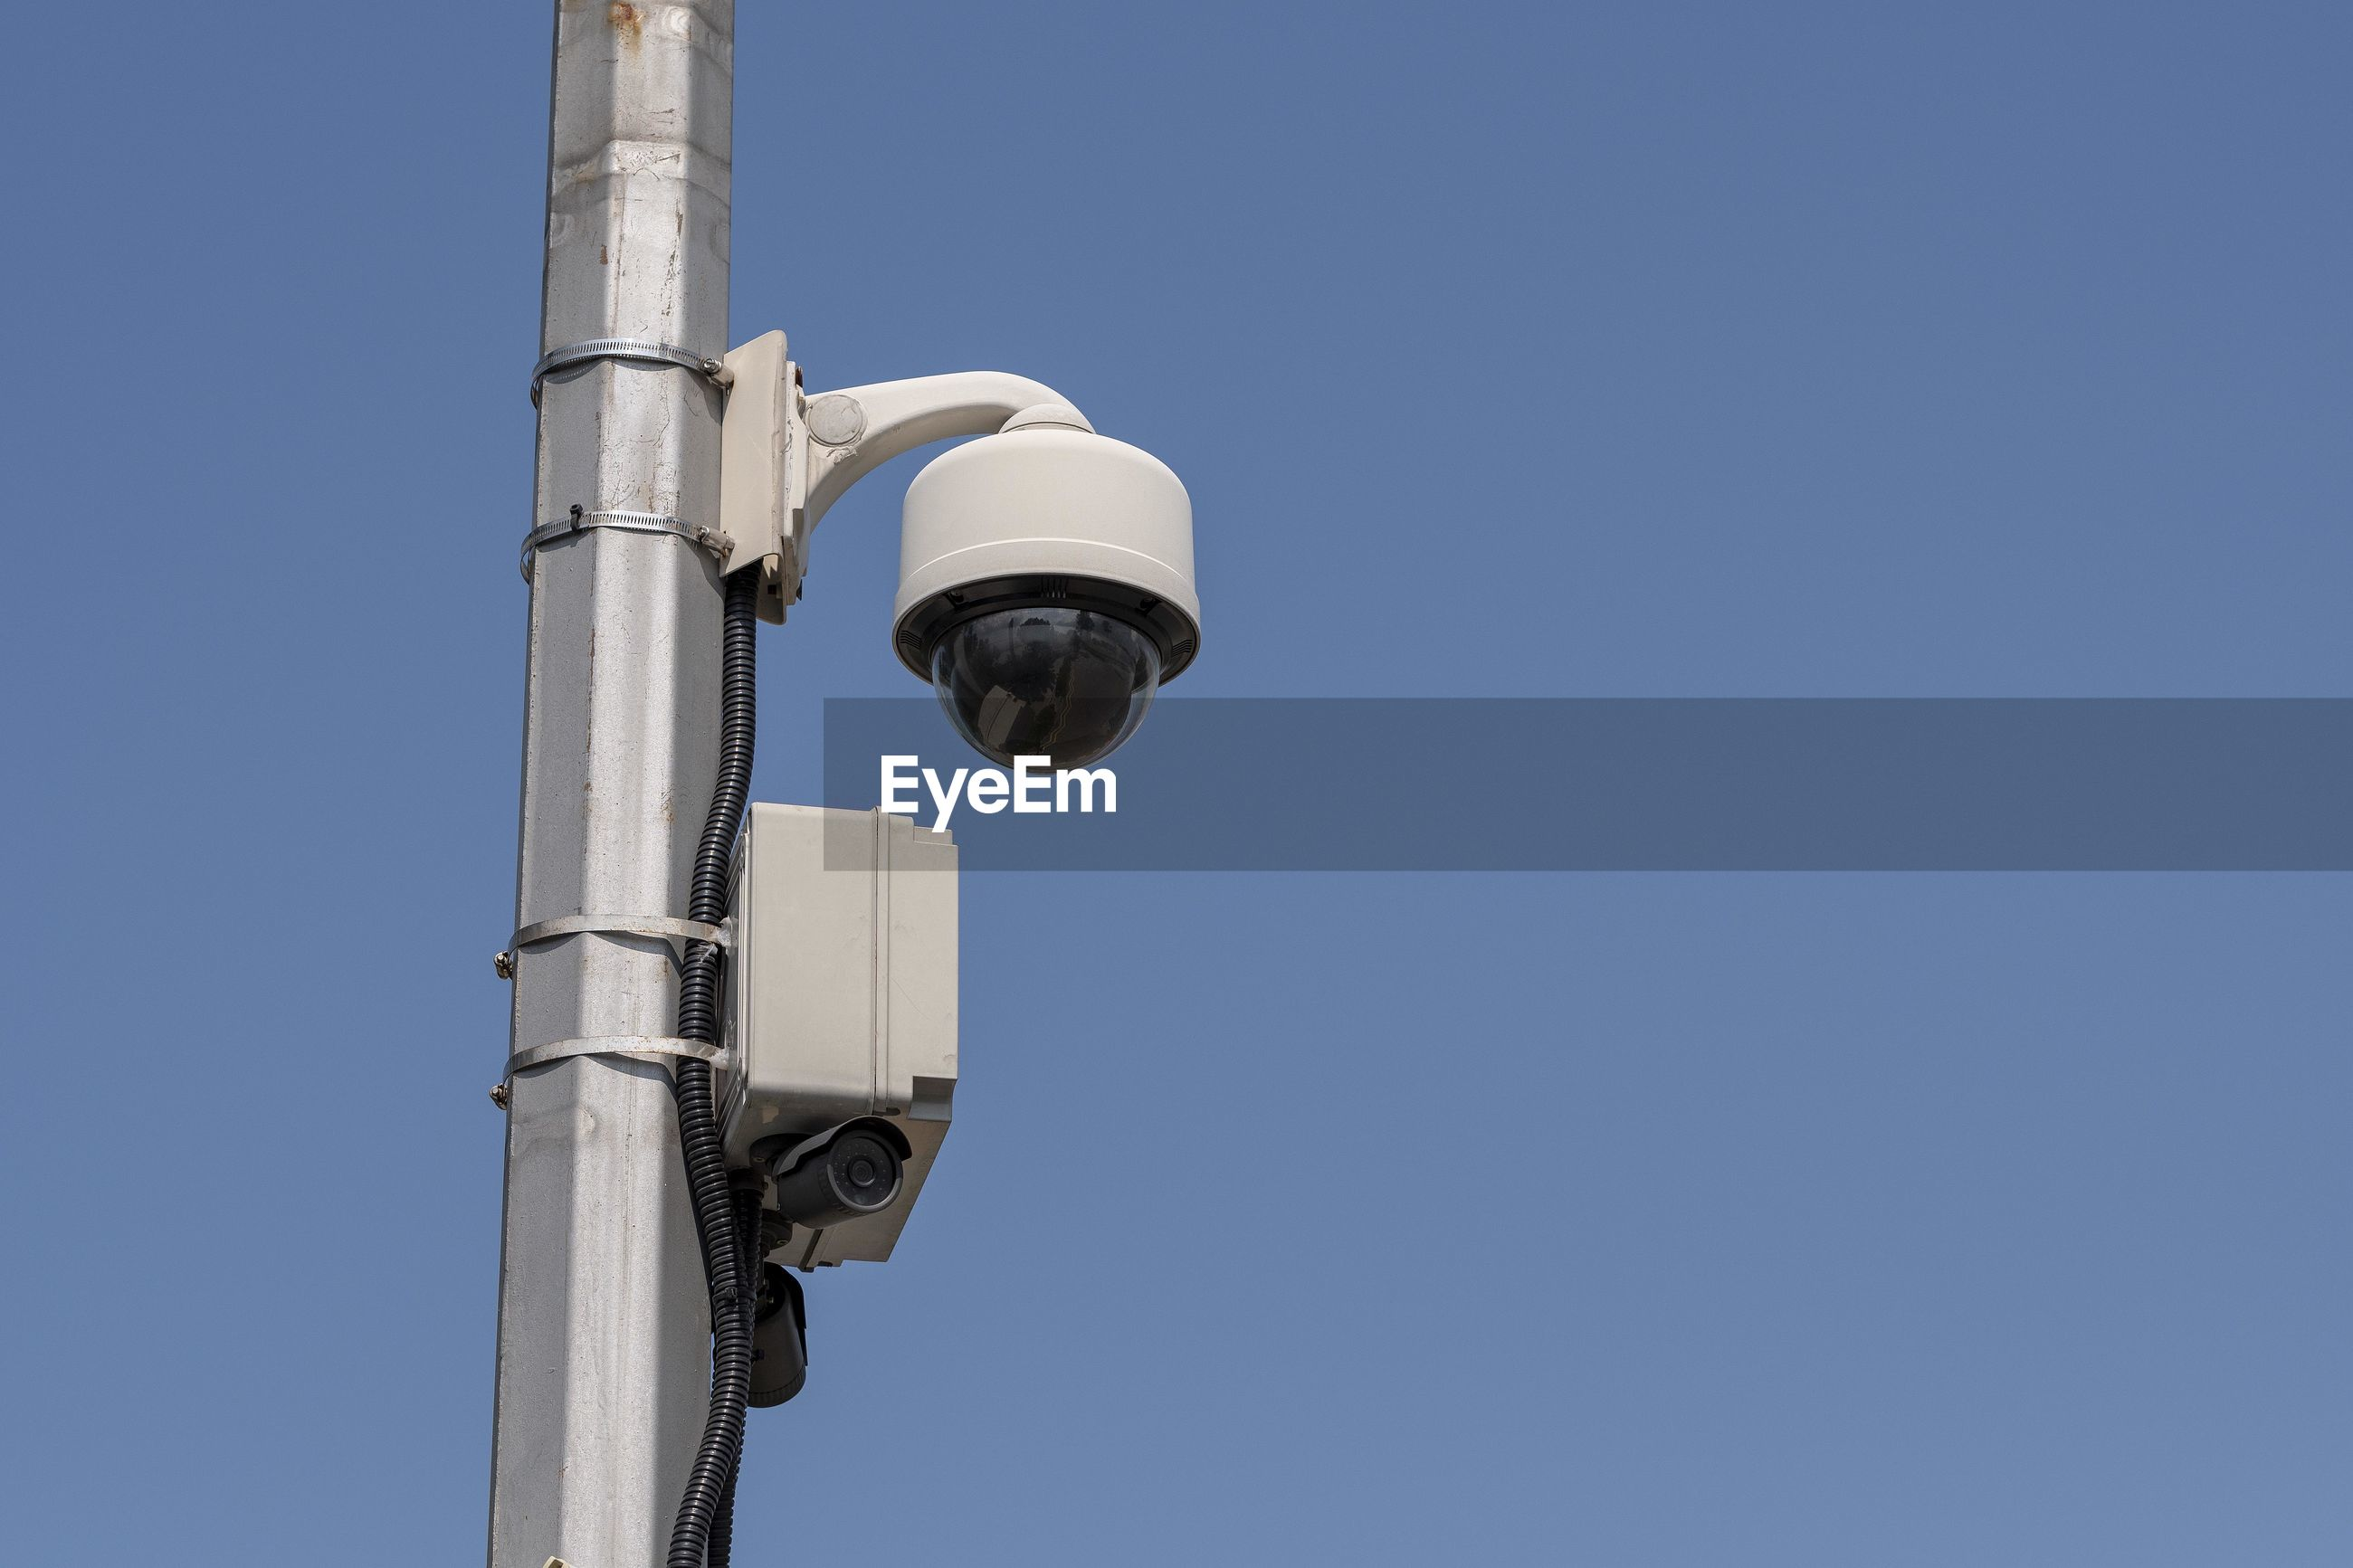 Low angle view of security camera against clear blue sky during sunny day